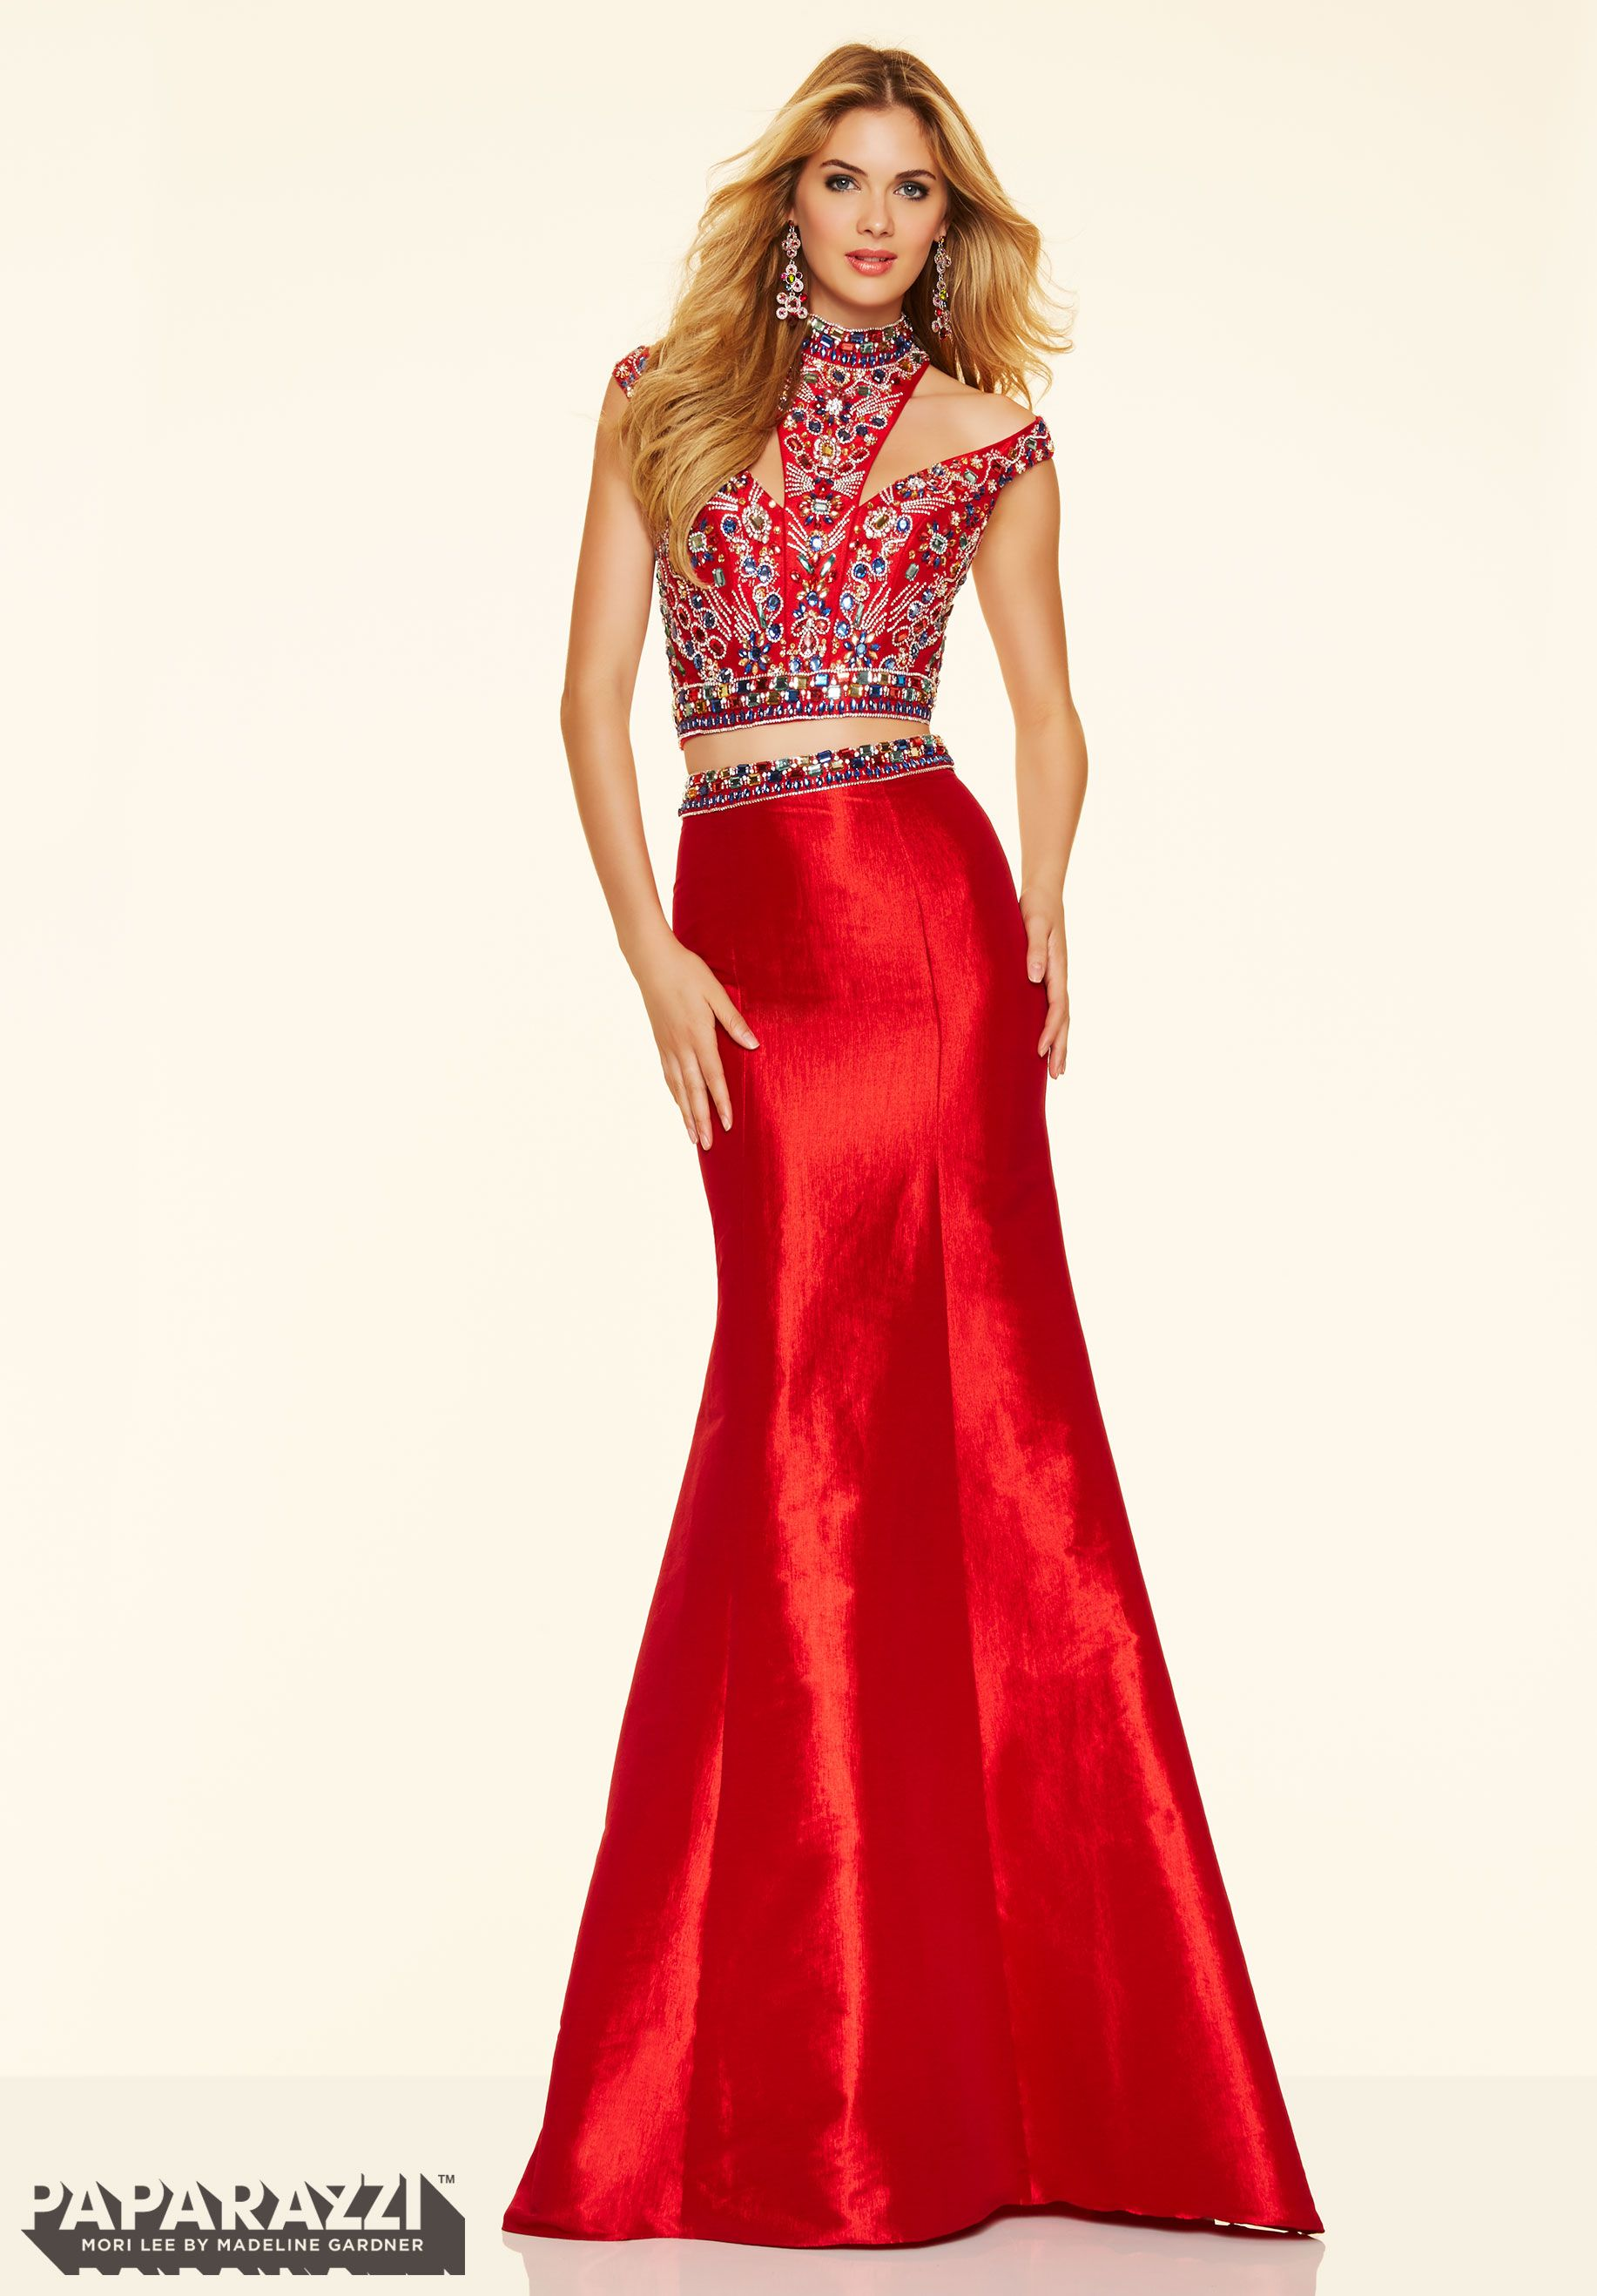 Prom Dresses by Paparazzi Prom - Dress Style 98046   PROM ...